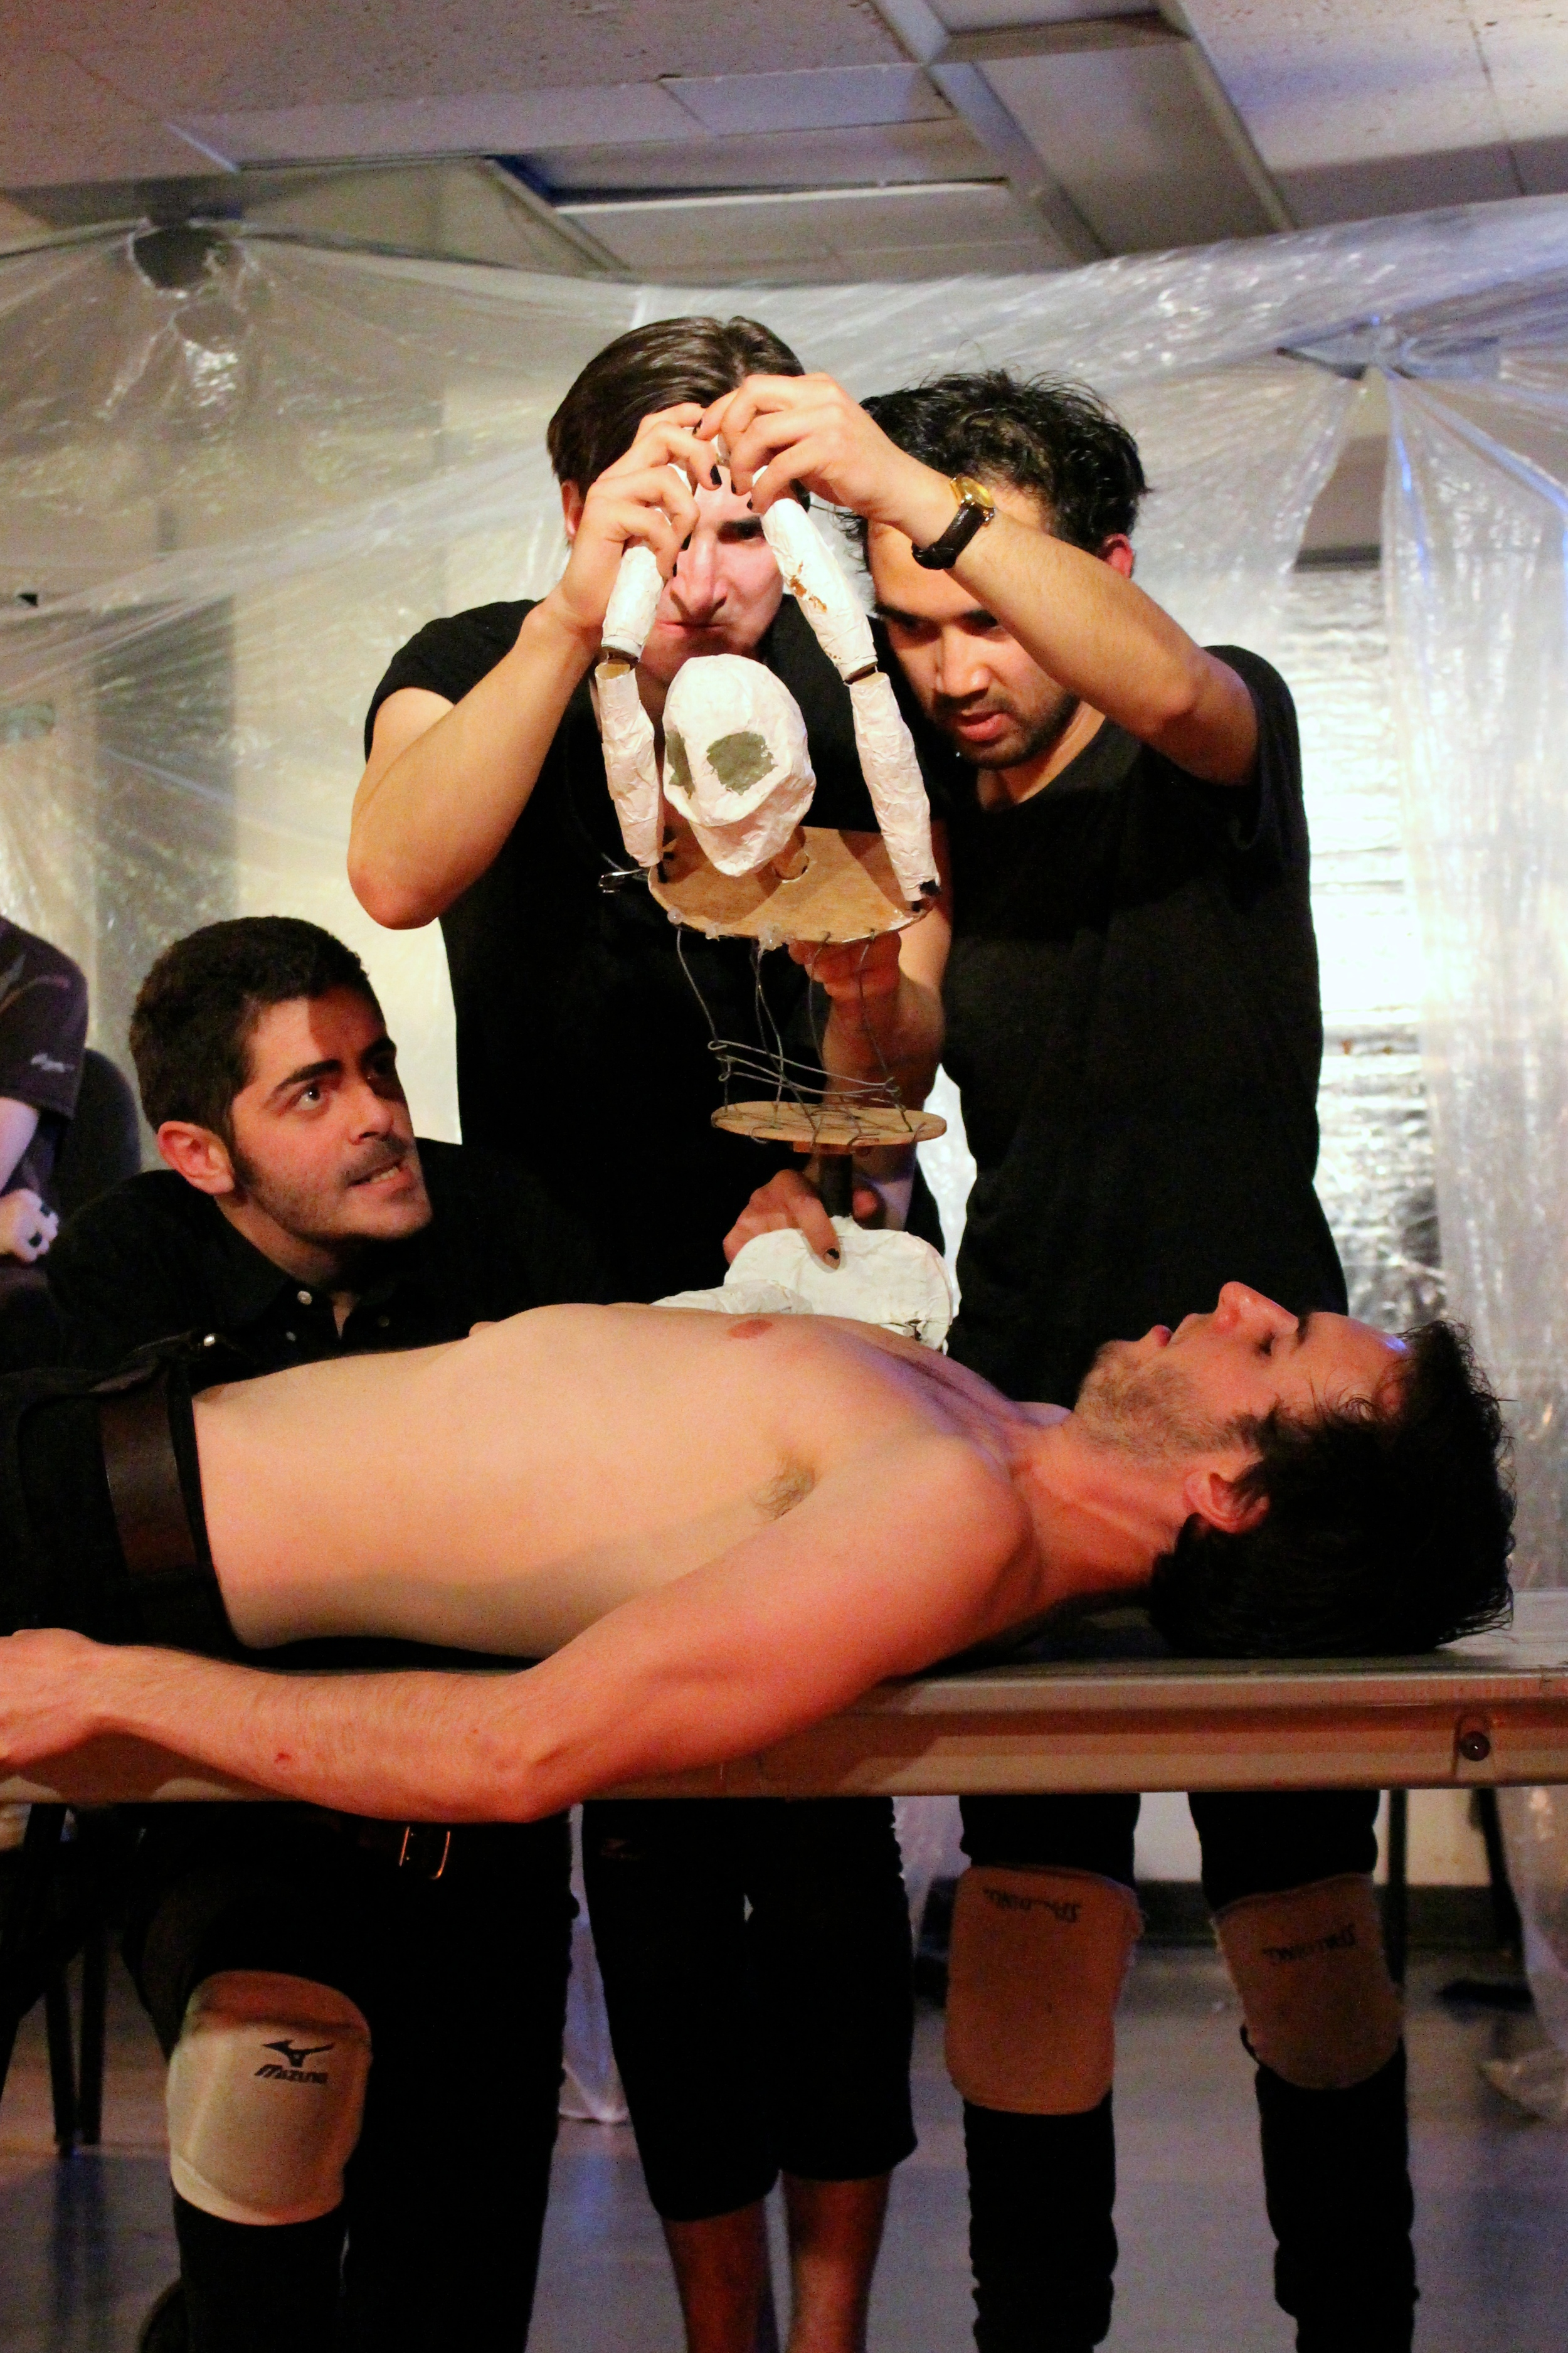 Shylock prepares to remove a pound of flesh from Antonio's chest